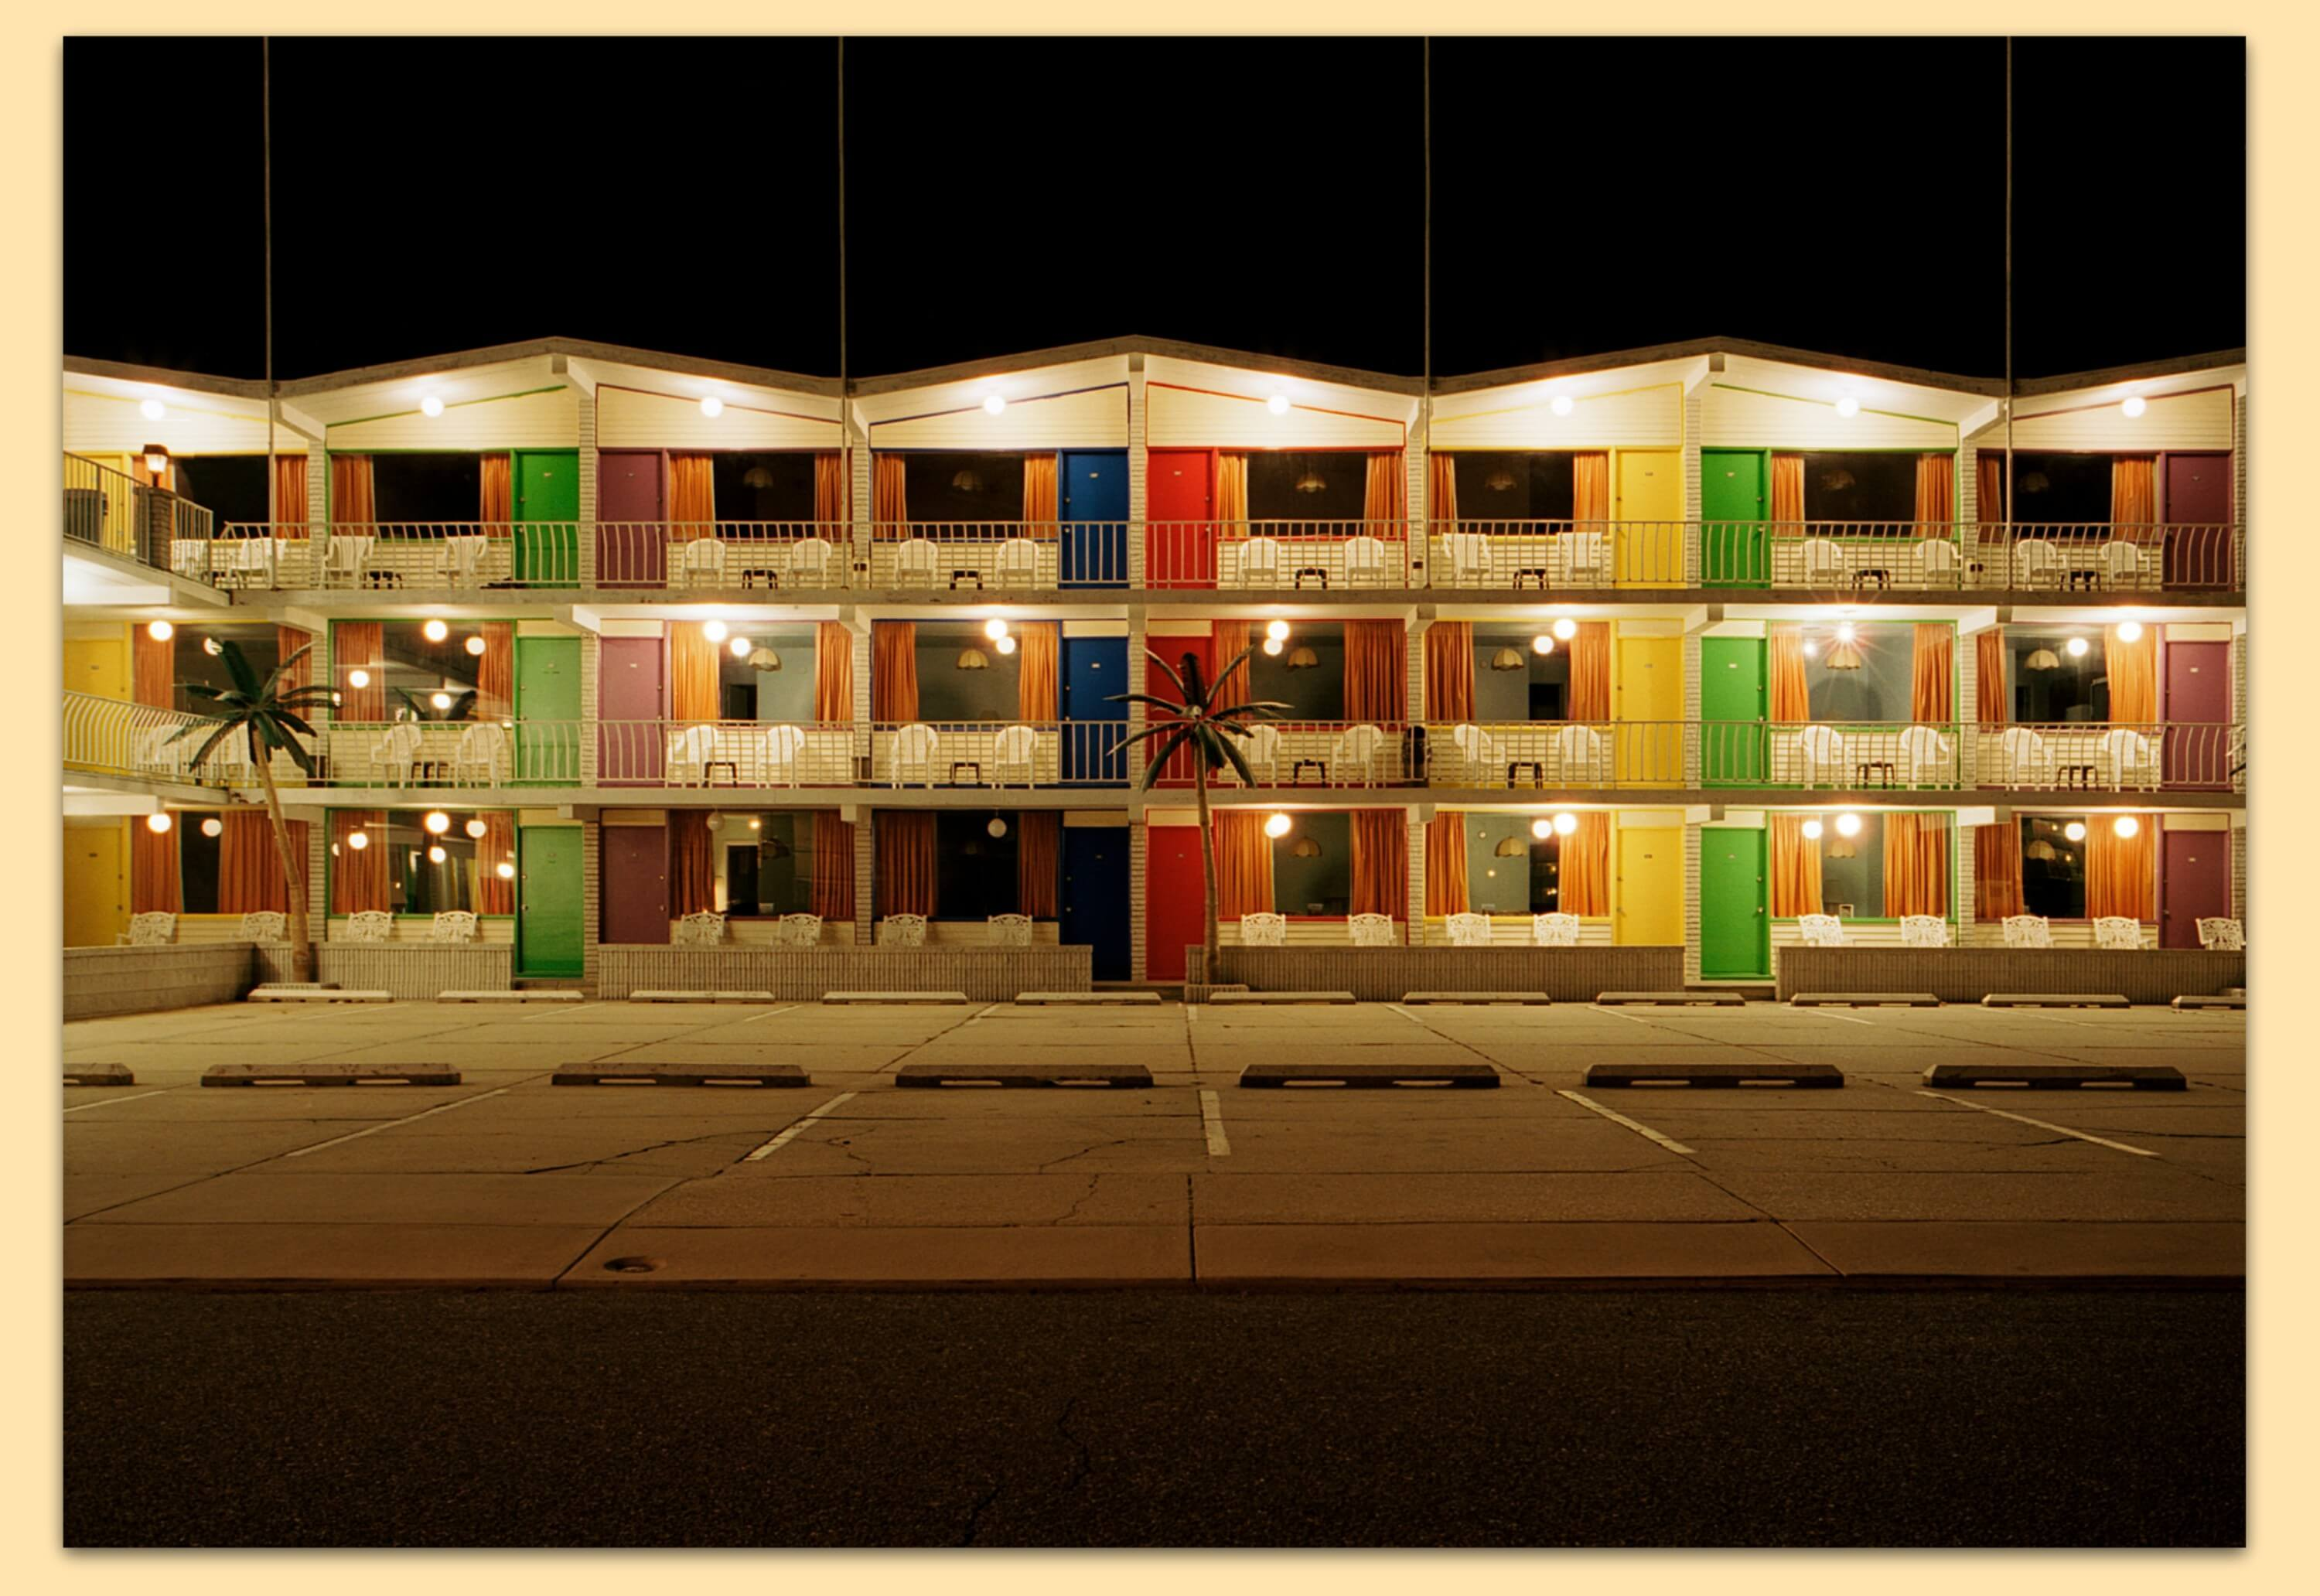 Eastfallslocal 16 hotel pana colorful at night overlay